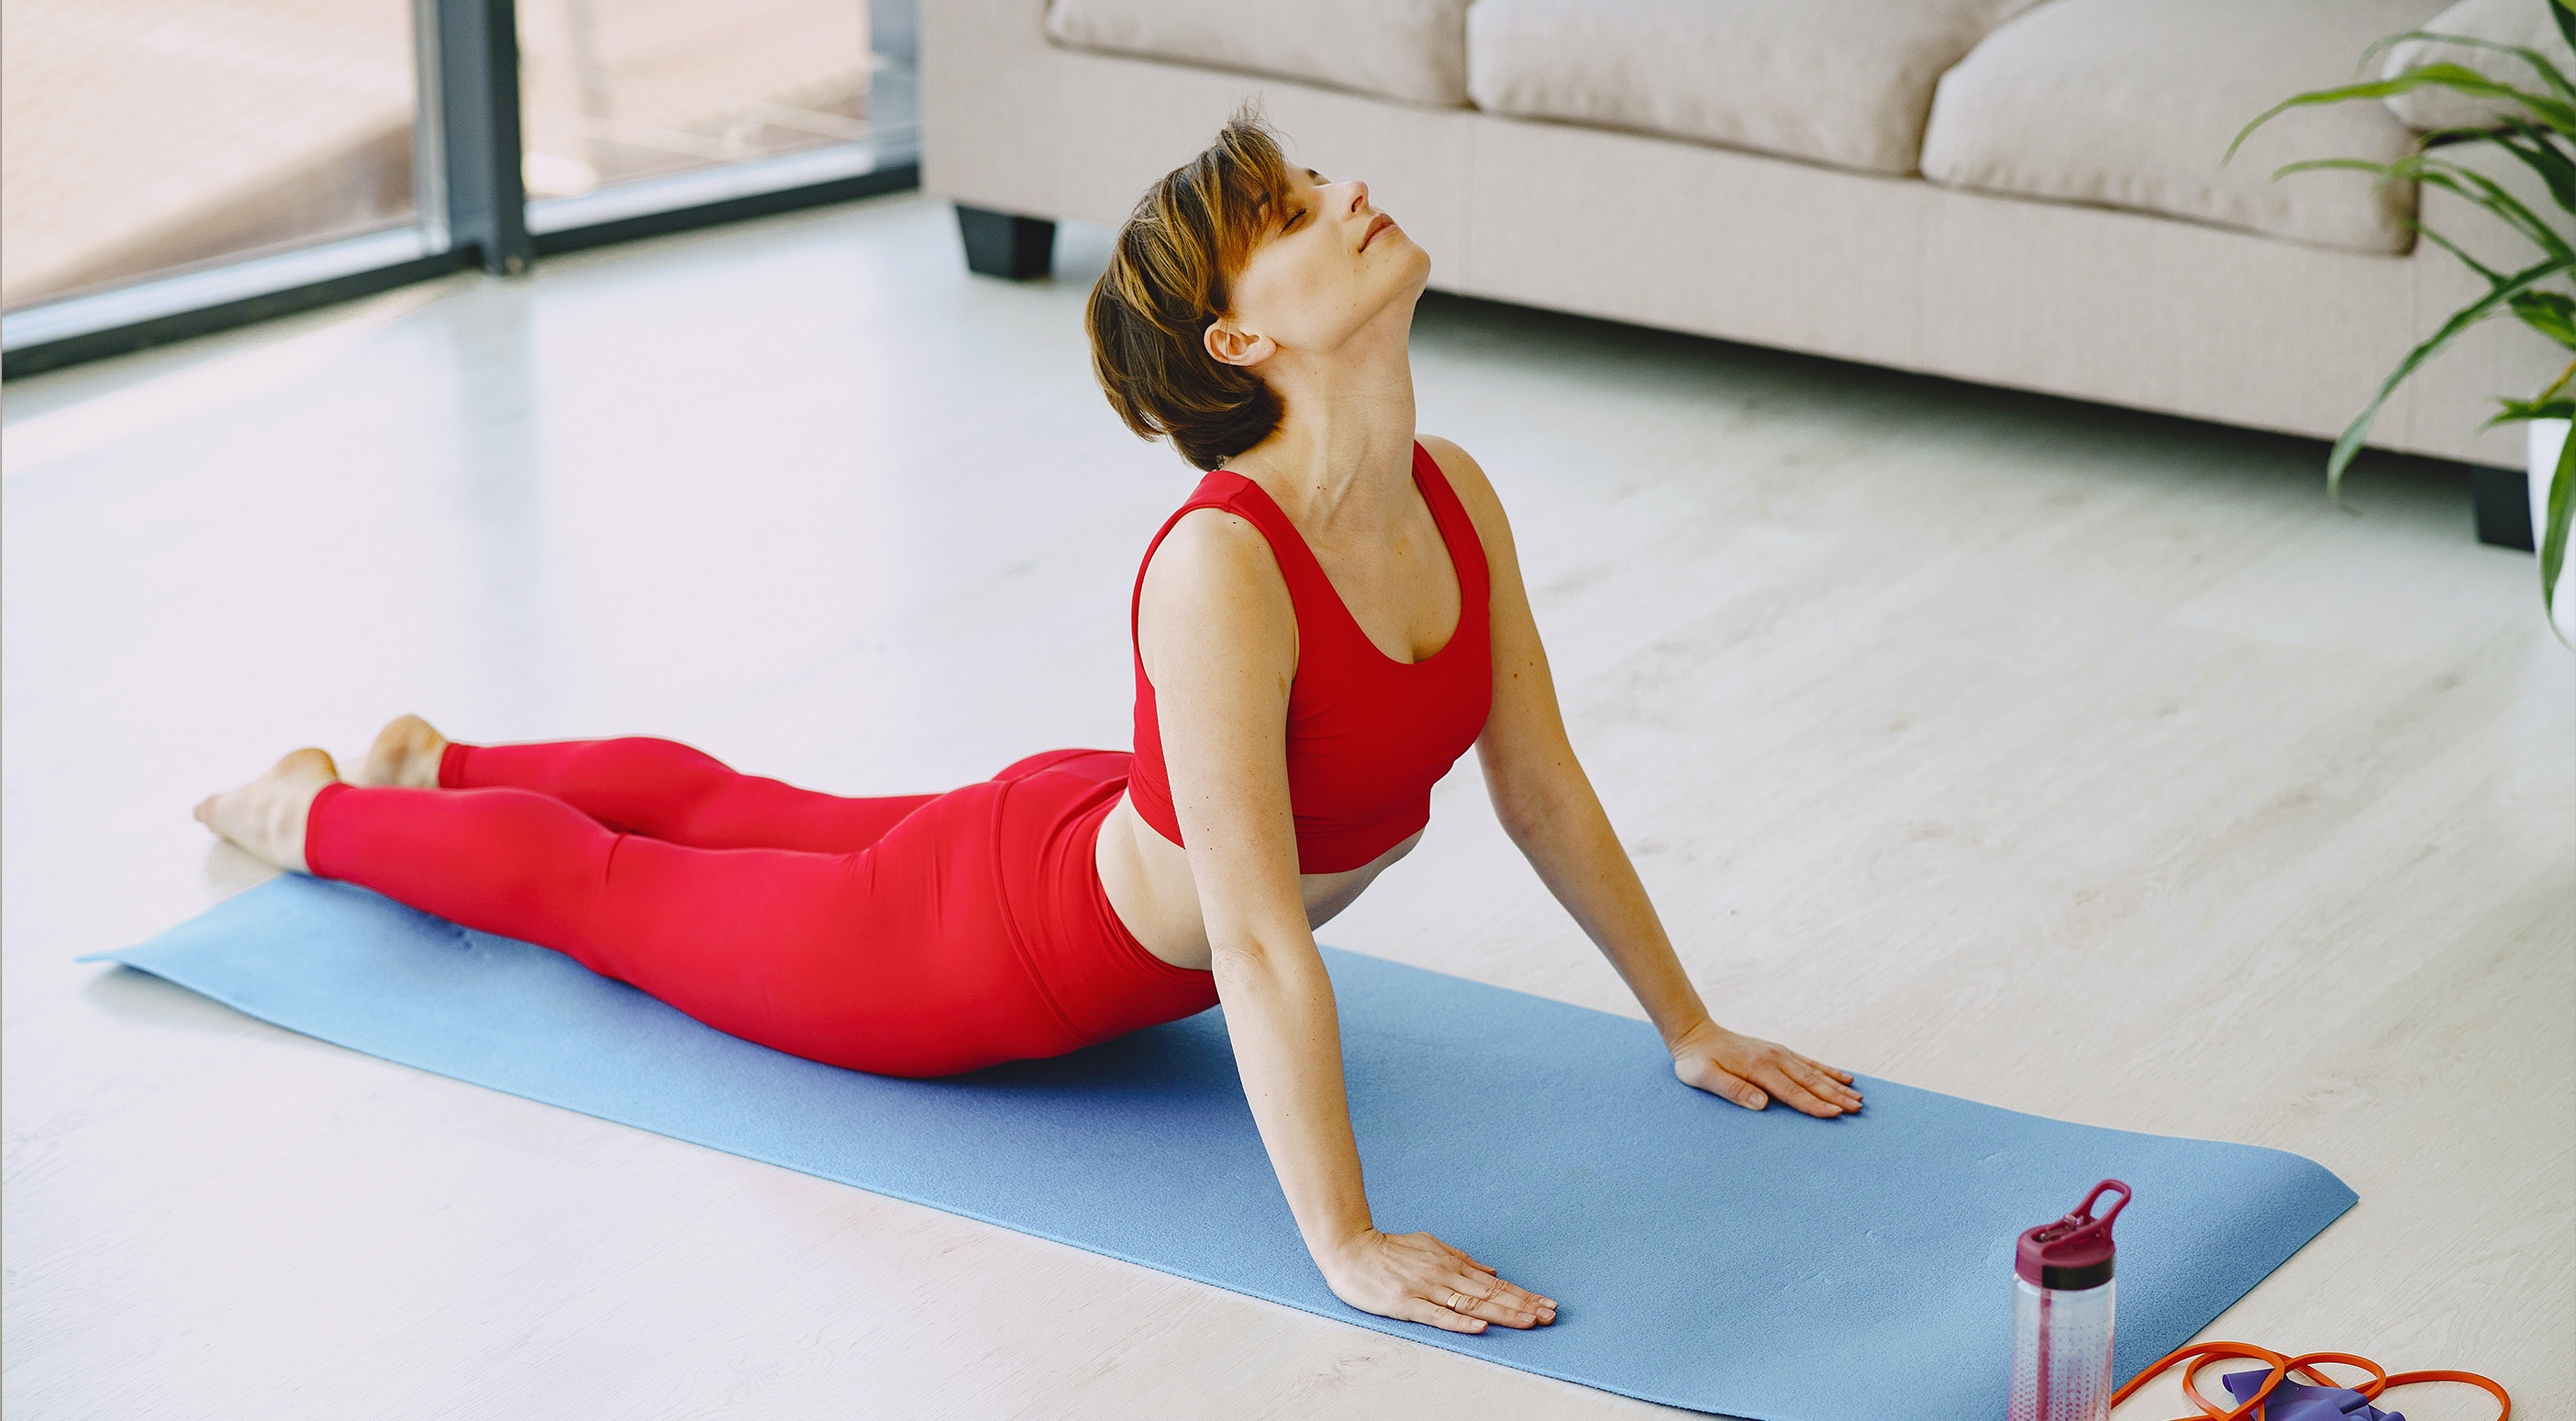 Woman breathing deeply while doing yoga